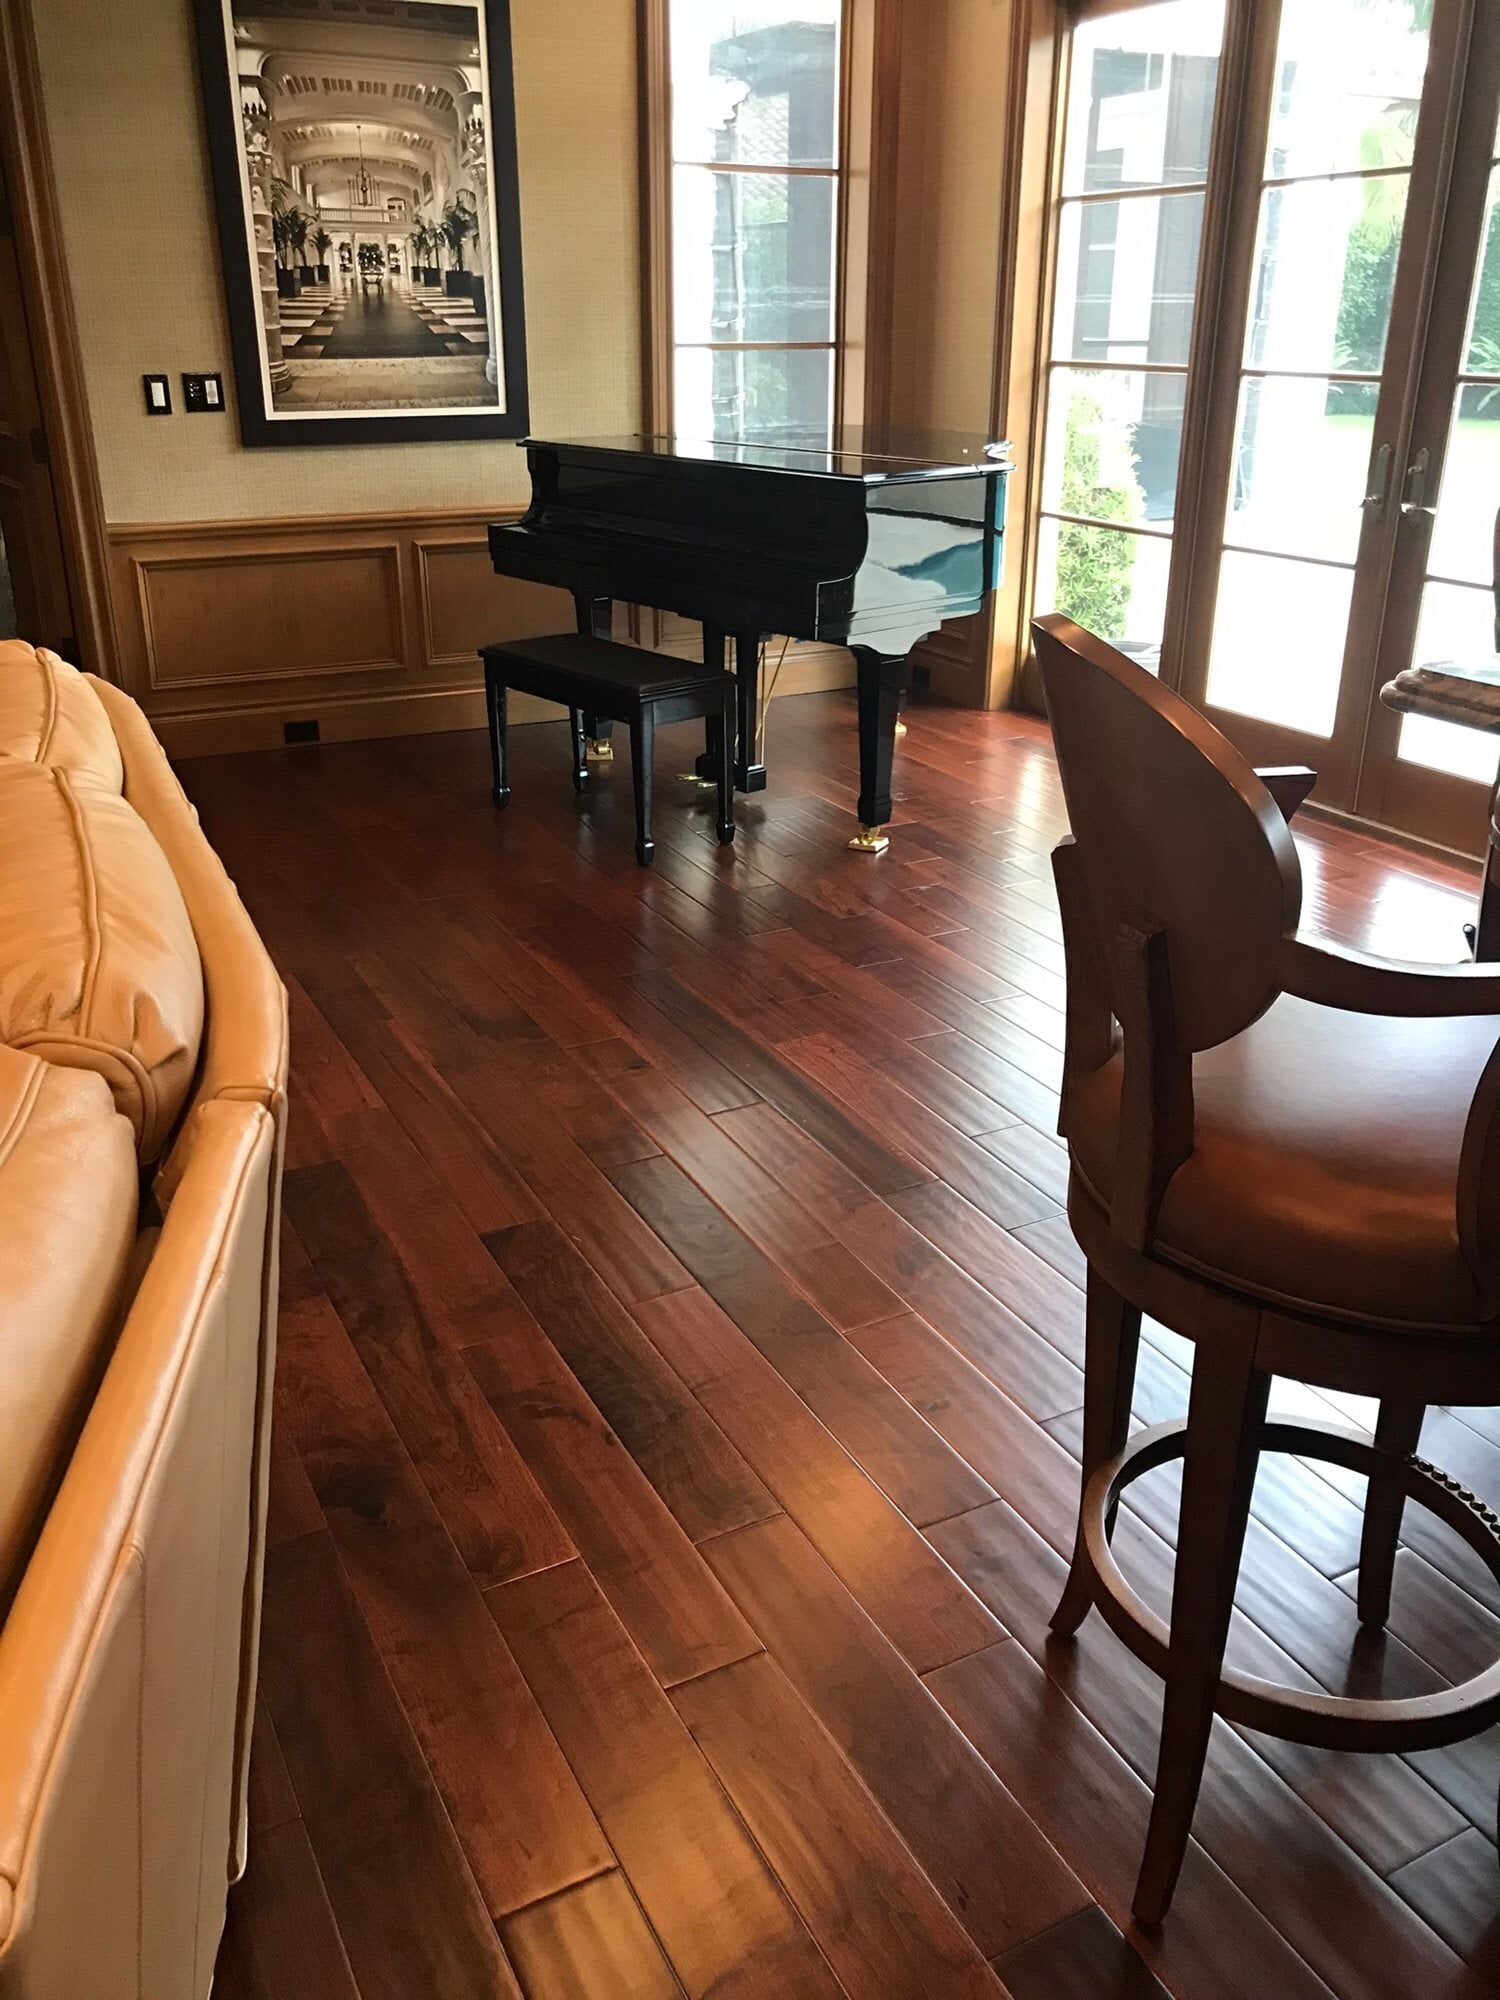 Engineered wood flooring in Juno Beach, FL from Floors For You Kitchen & Bath